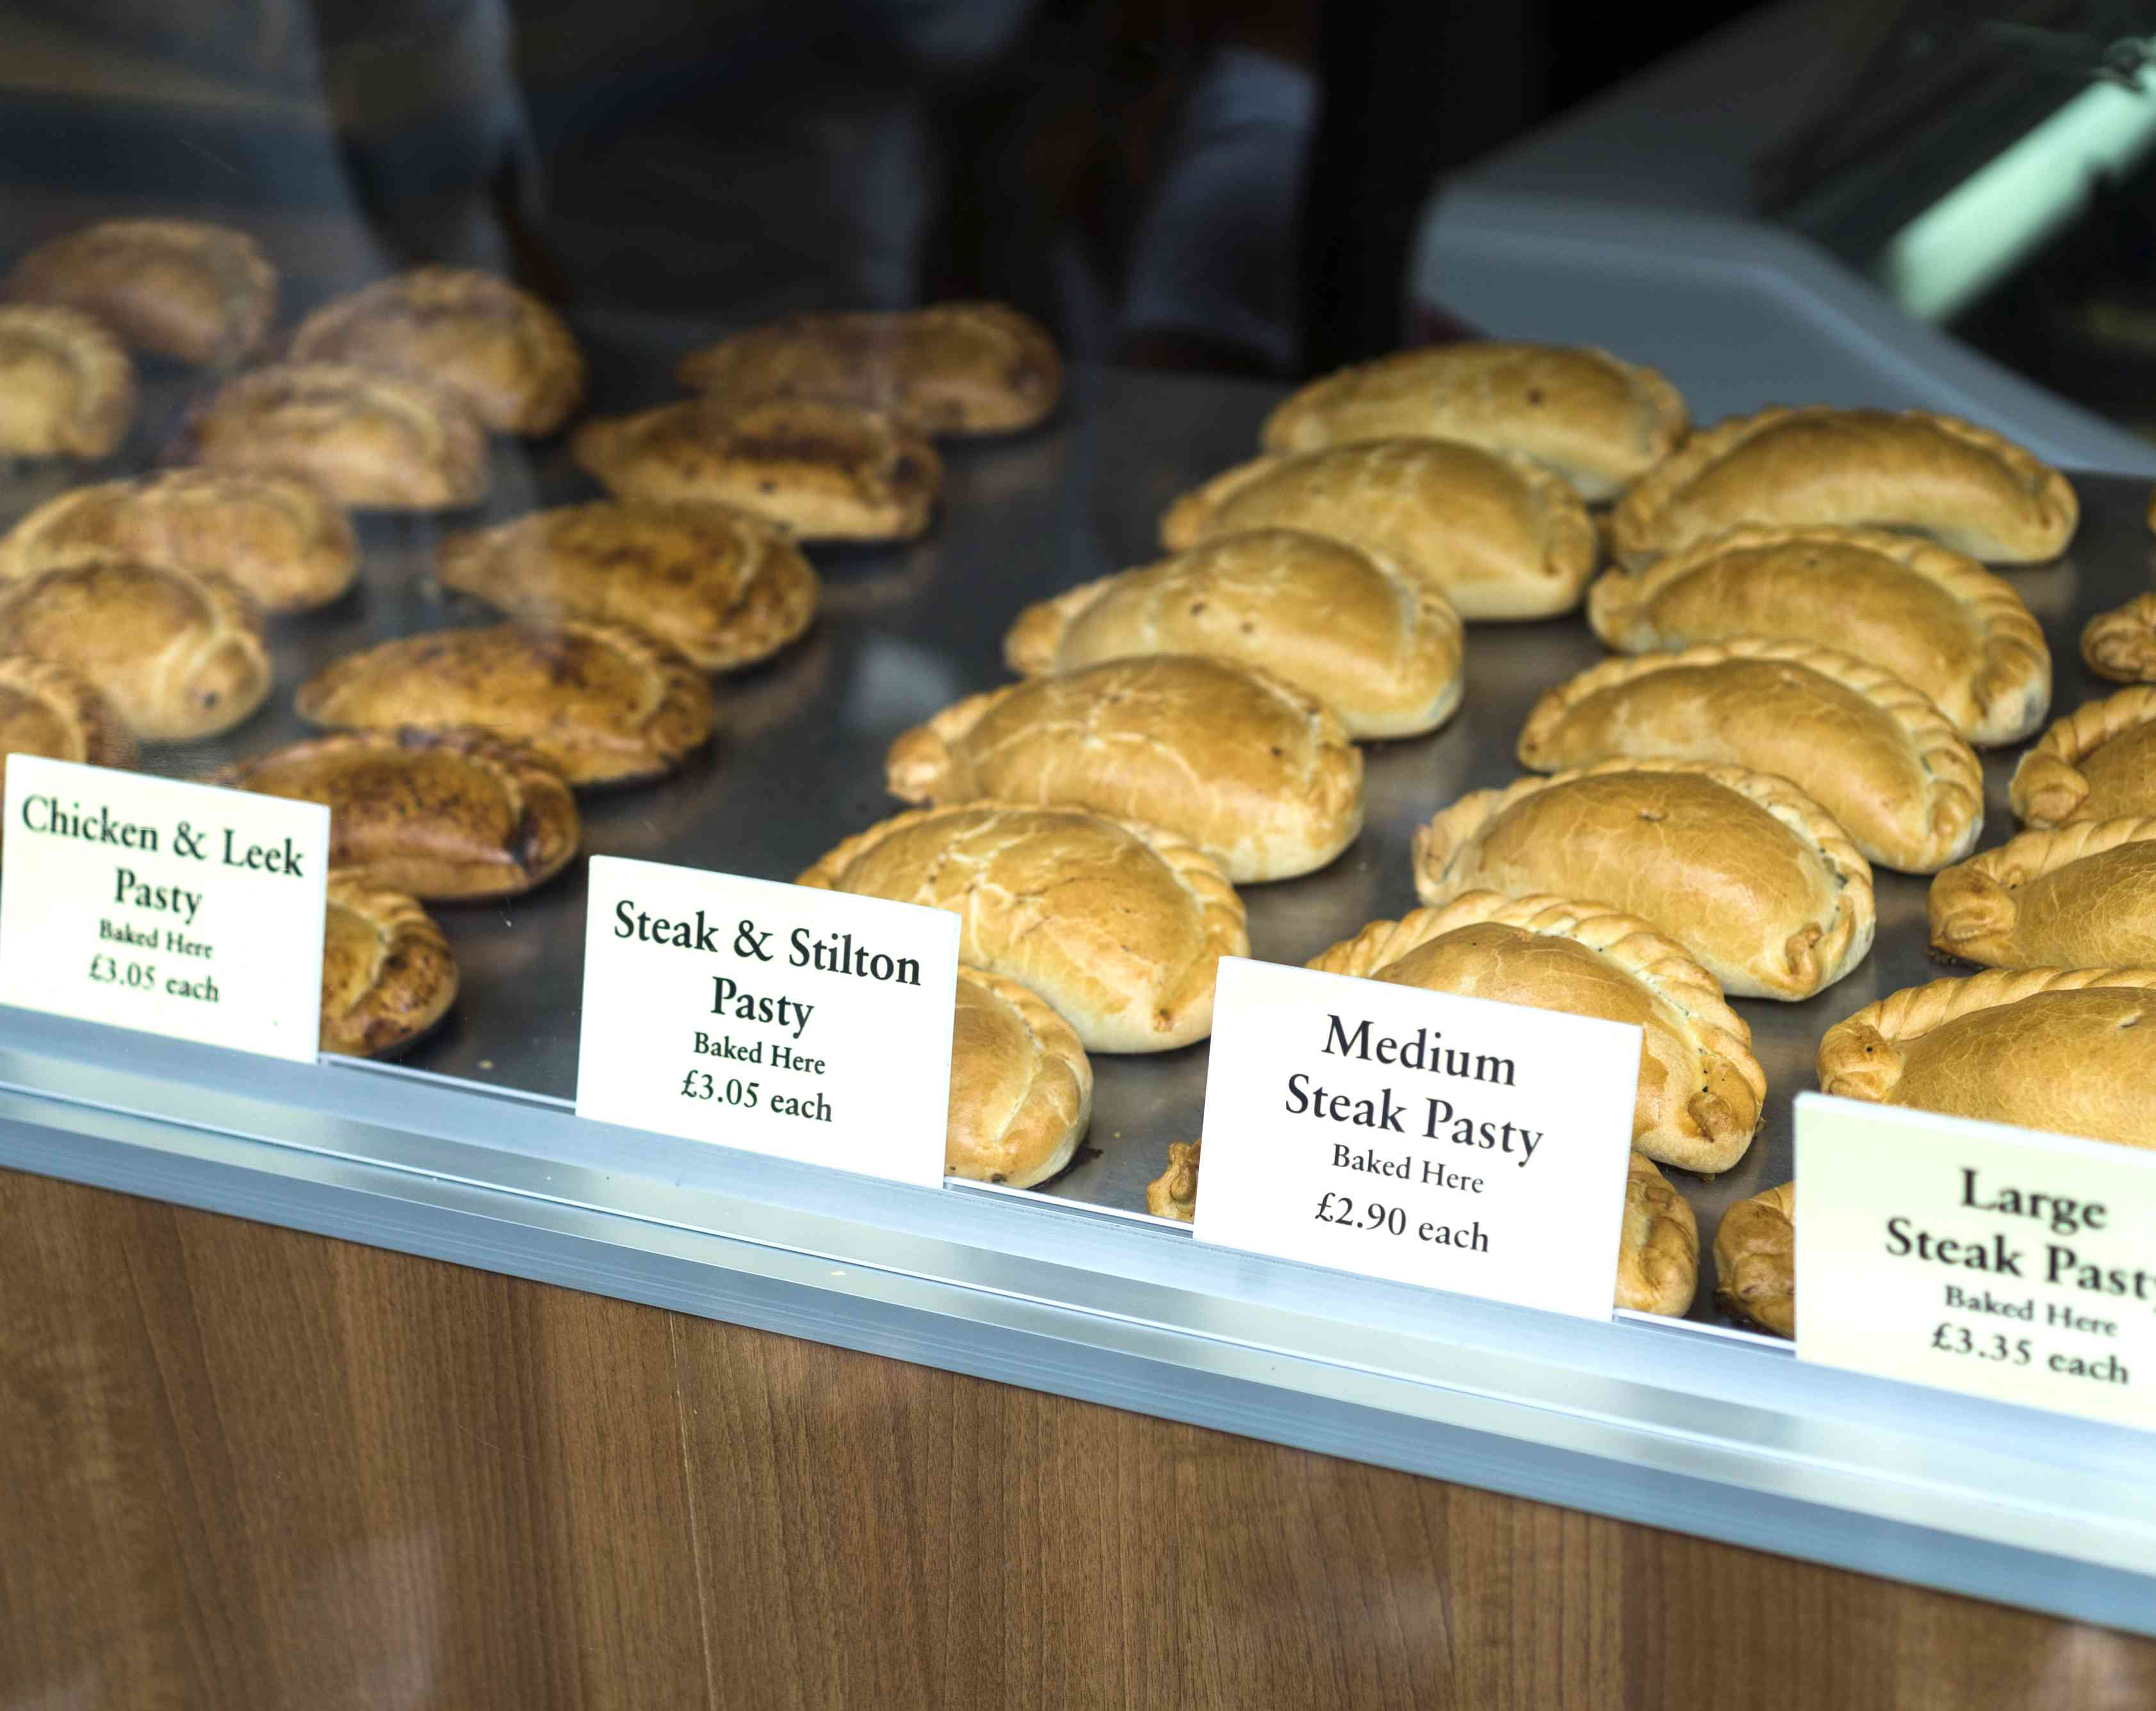 Different pasties being displayed in a windows shop in Cornwall